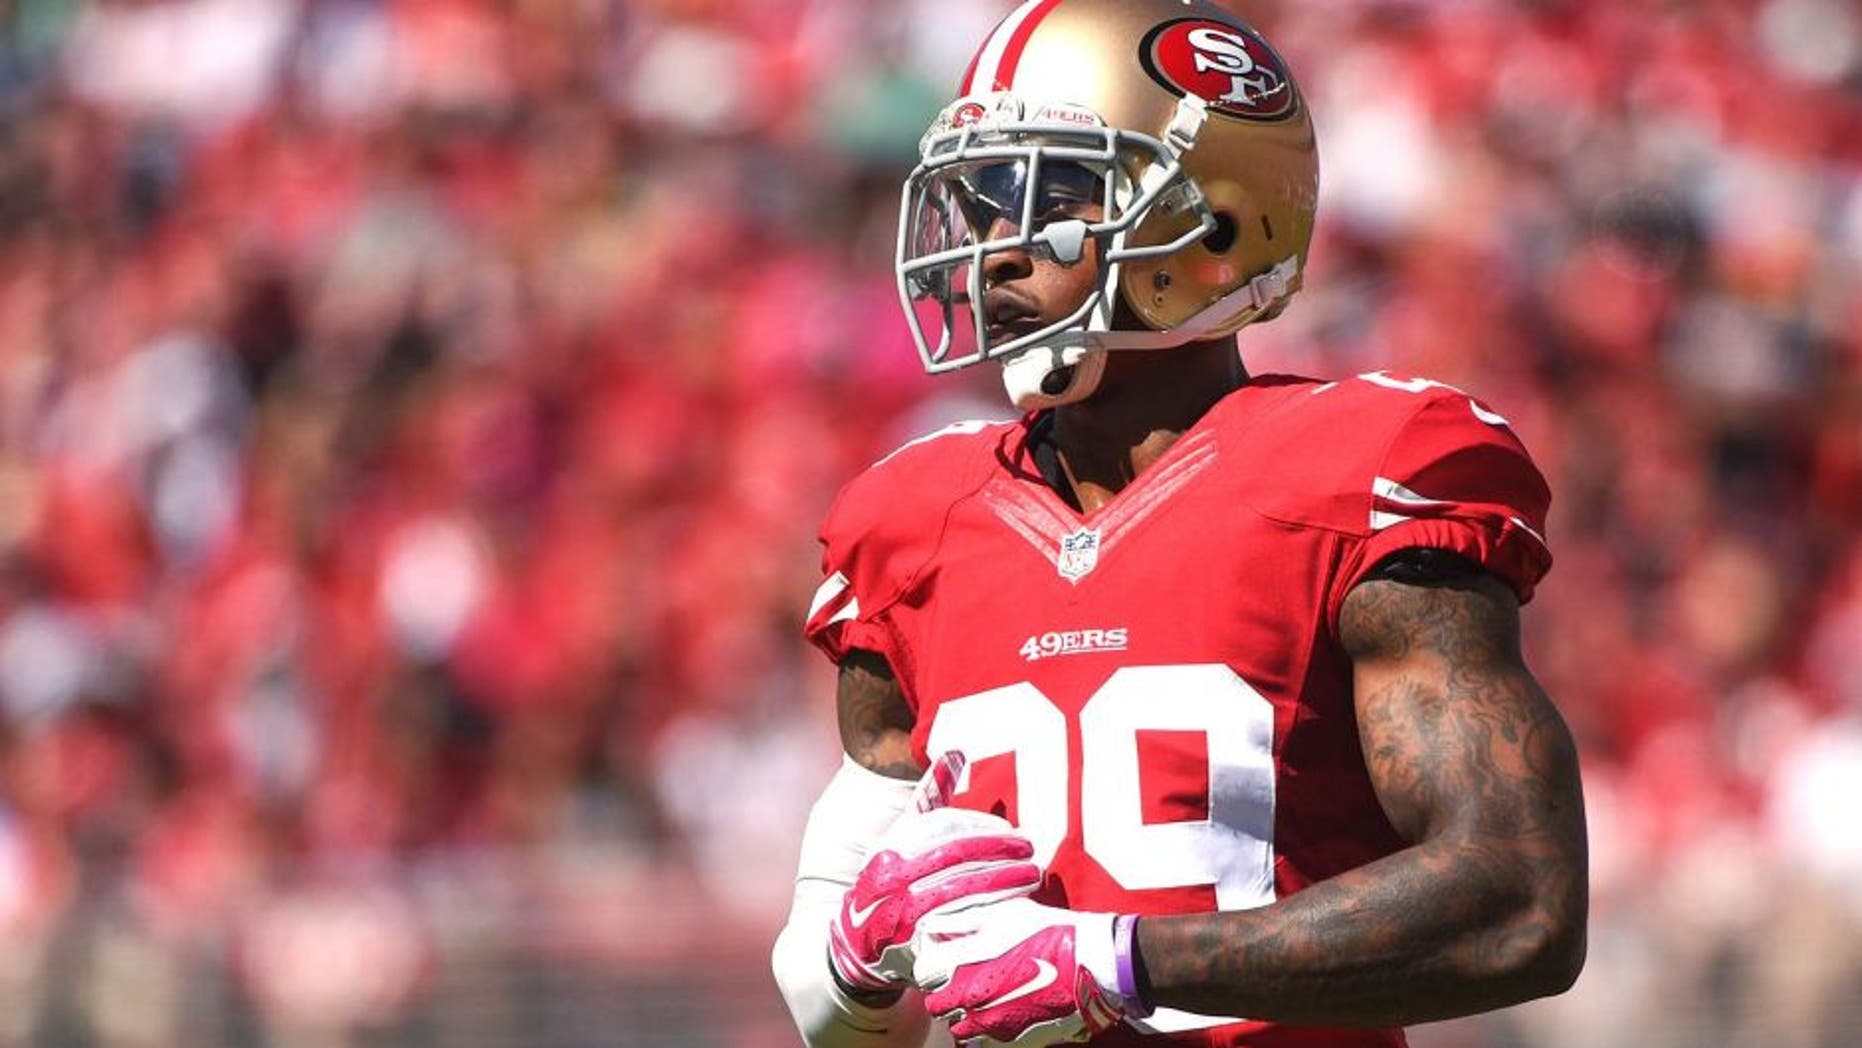 October 5, 2014; Santa Clara, CA, USA; San Francisco 49ers cornerback Chris Culliver (29) looks to the sideline during the first quarter against the Kansas City Chiefs at Levi's Stadium. Mandatory Credit: Kyle Terada-USA TODAY Sports